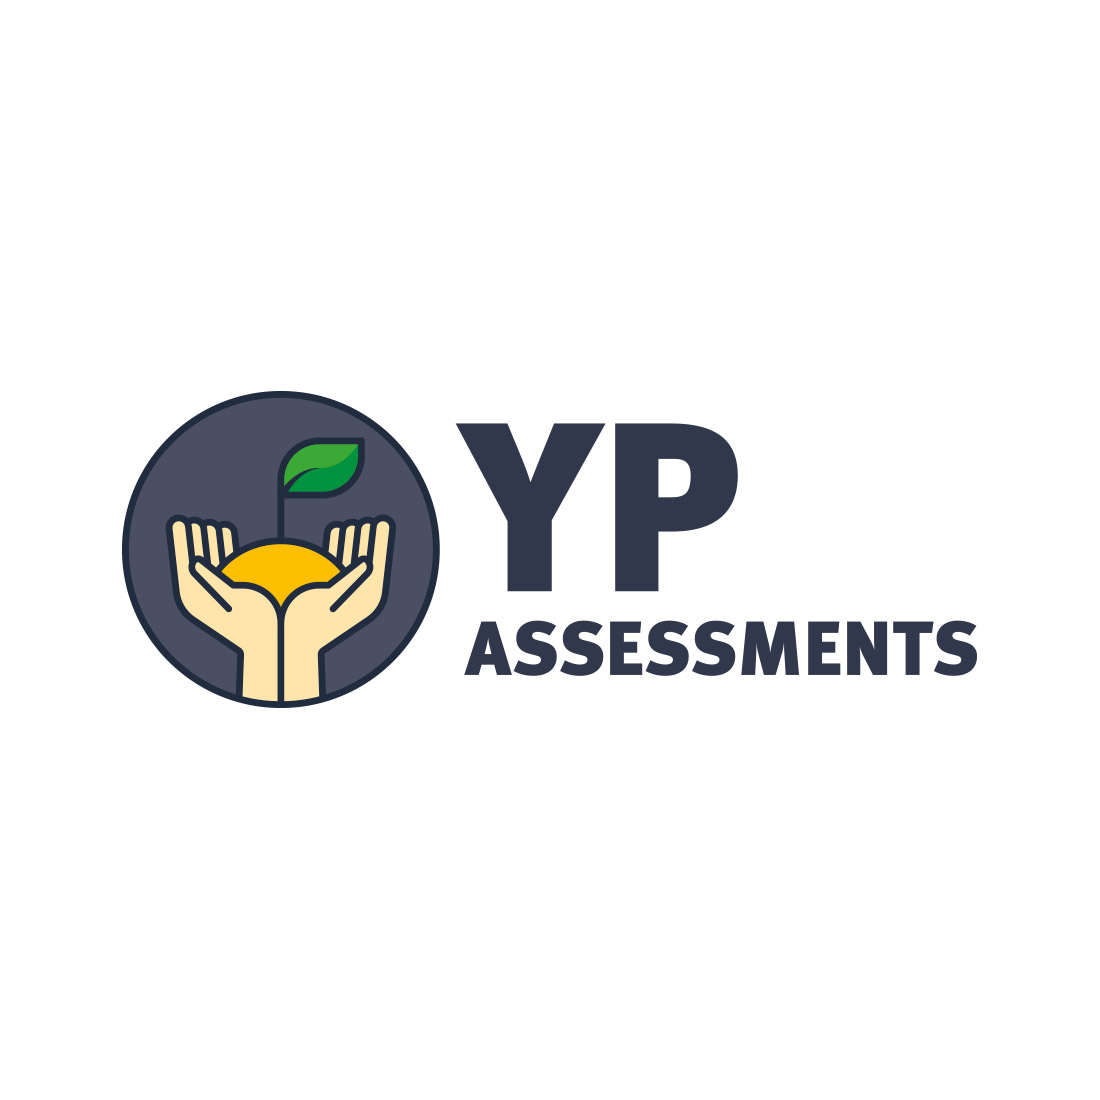 YP Assessments Elbowroom Graphics